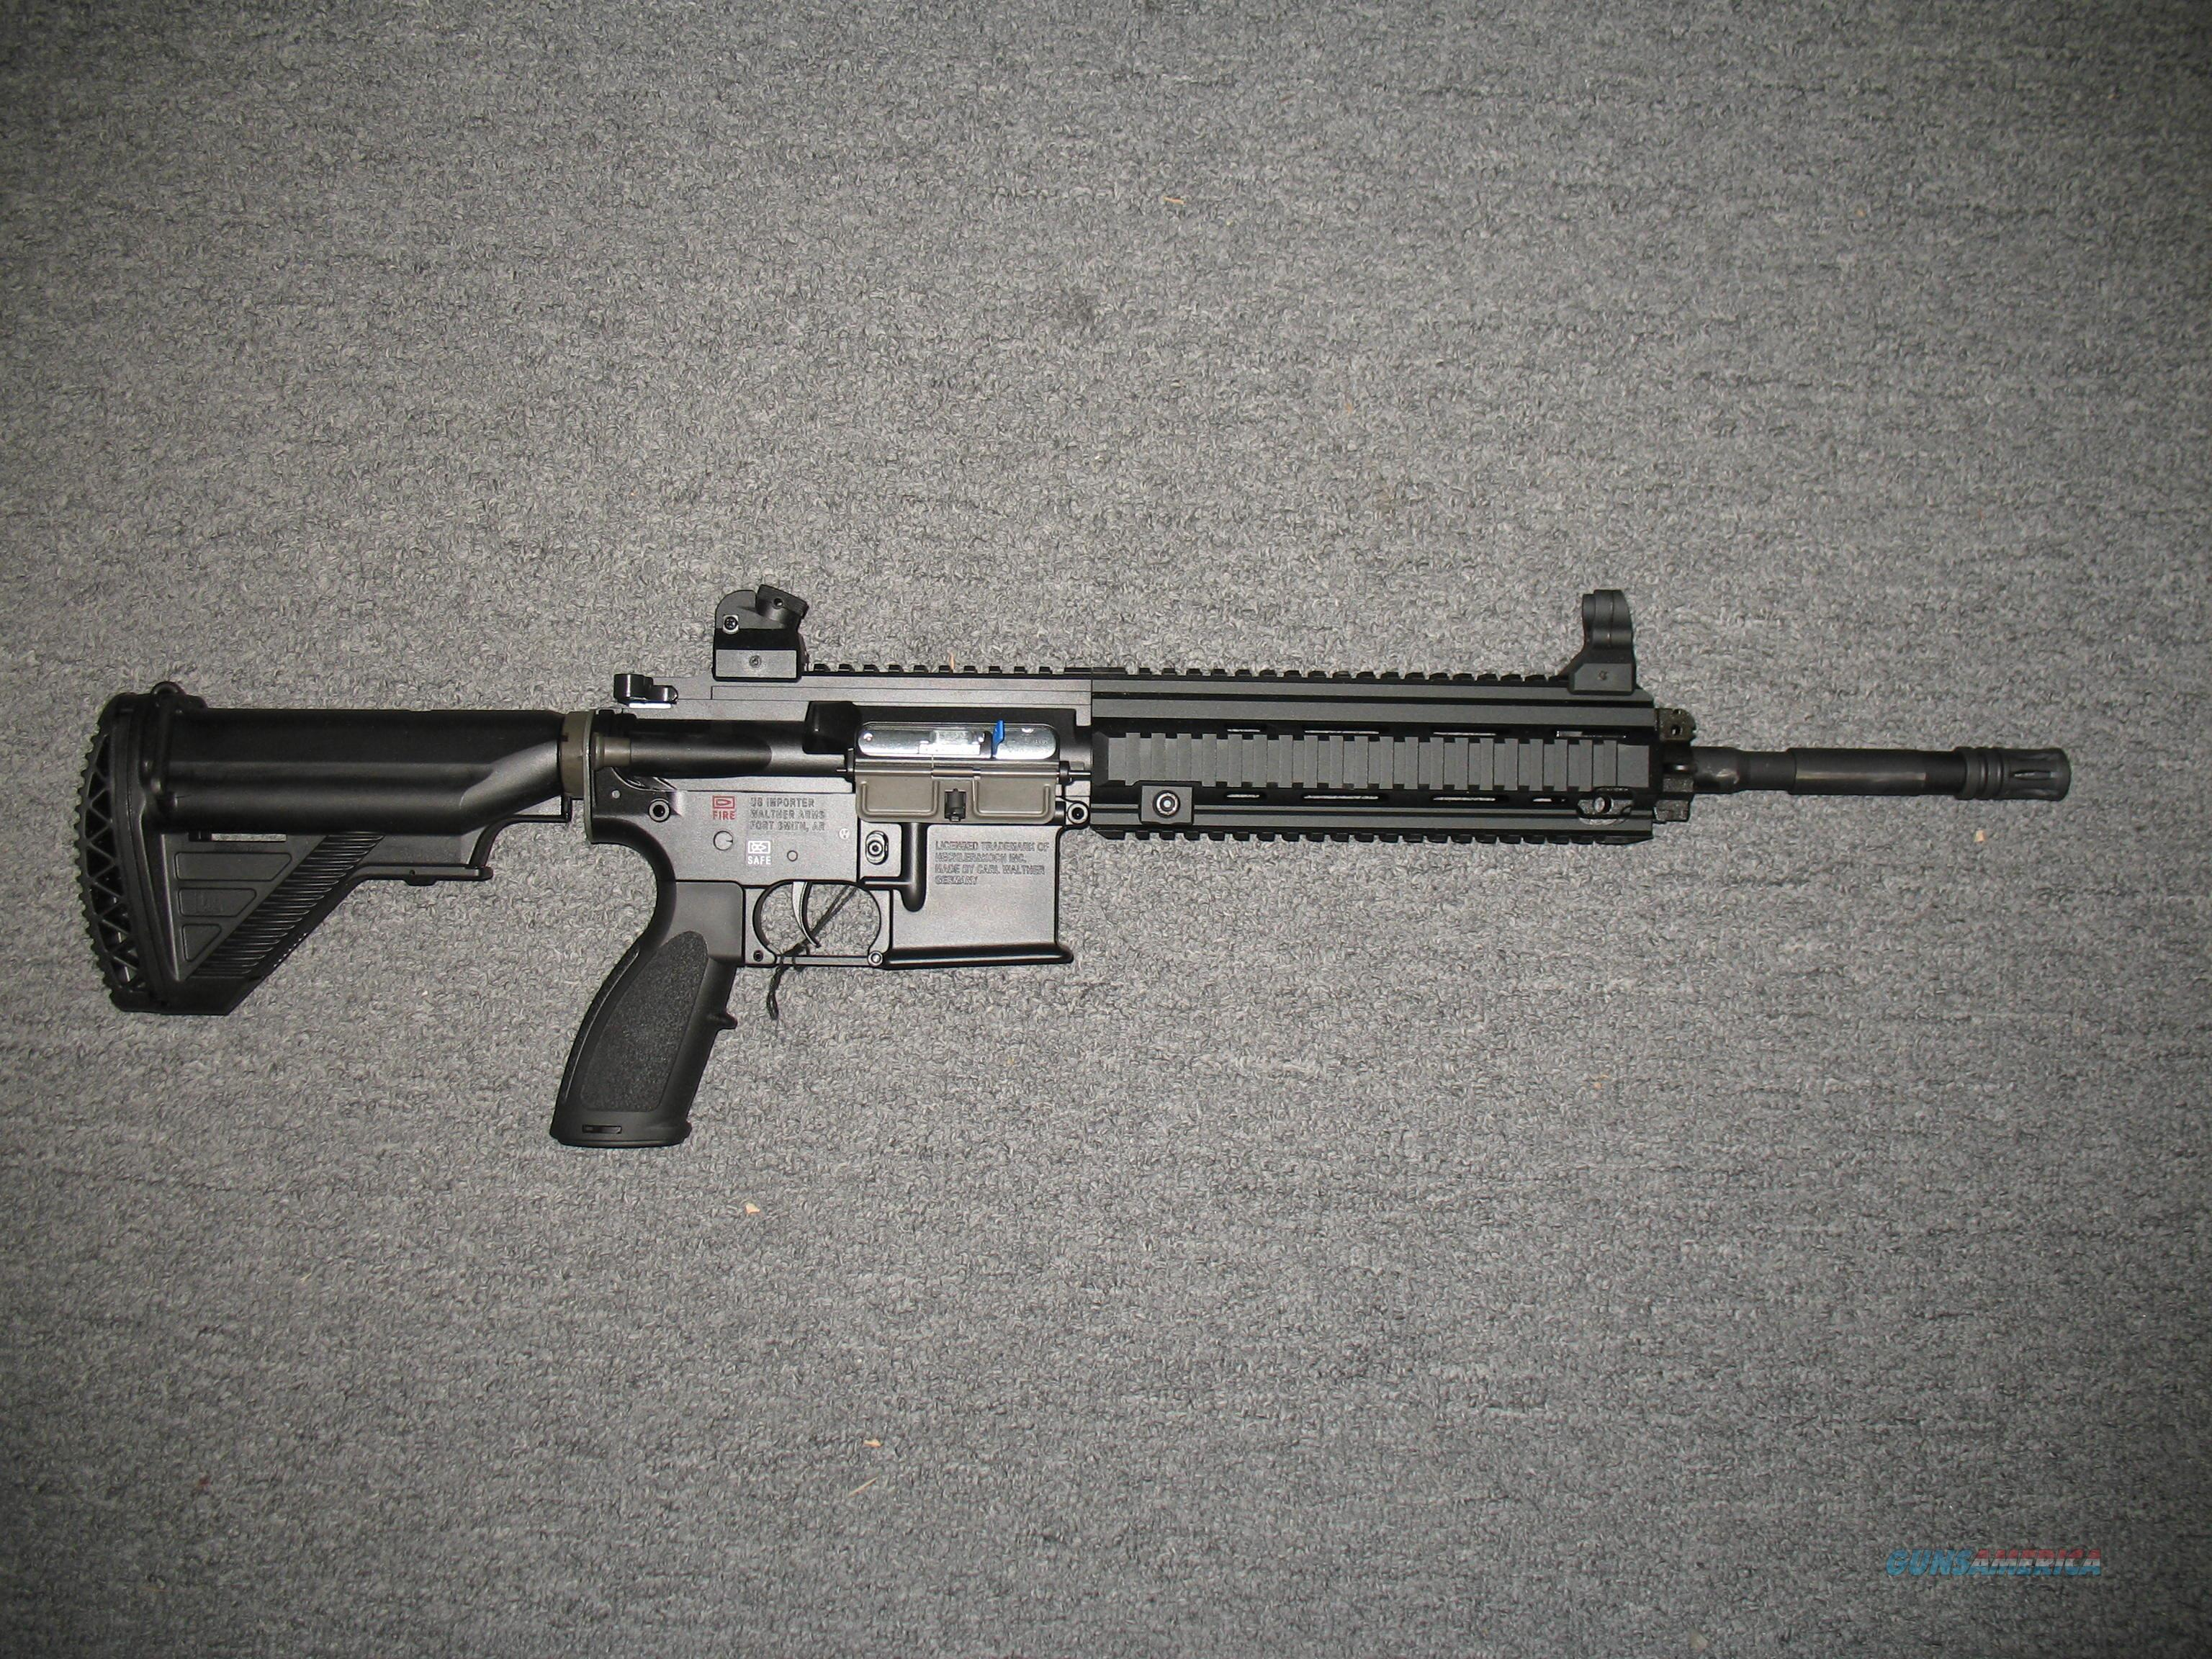 HK416D  Guns > Rifles > Heckler & Koch Rifles > Tactical